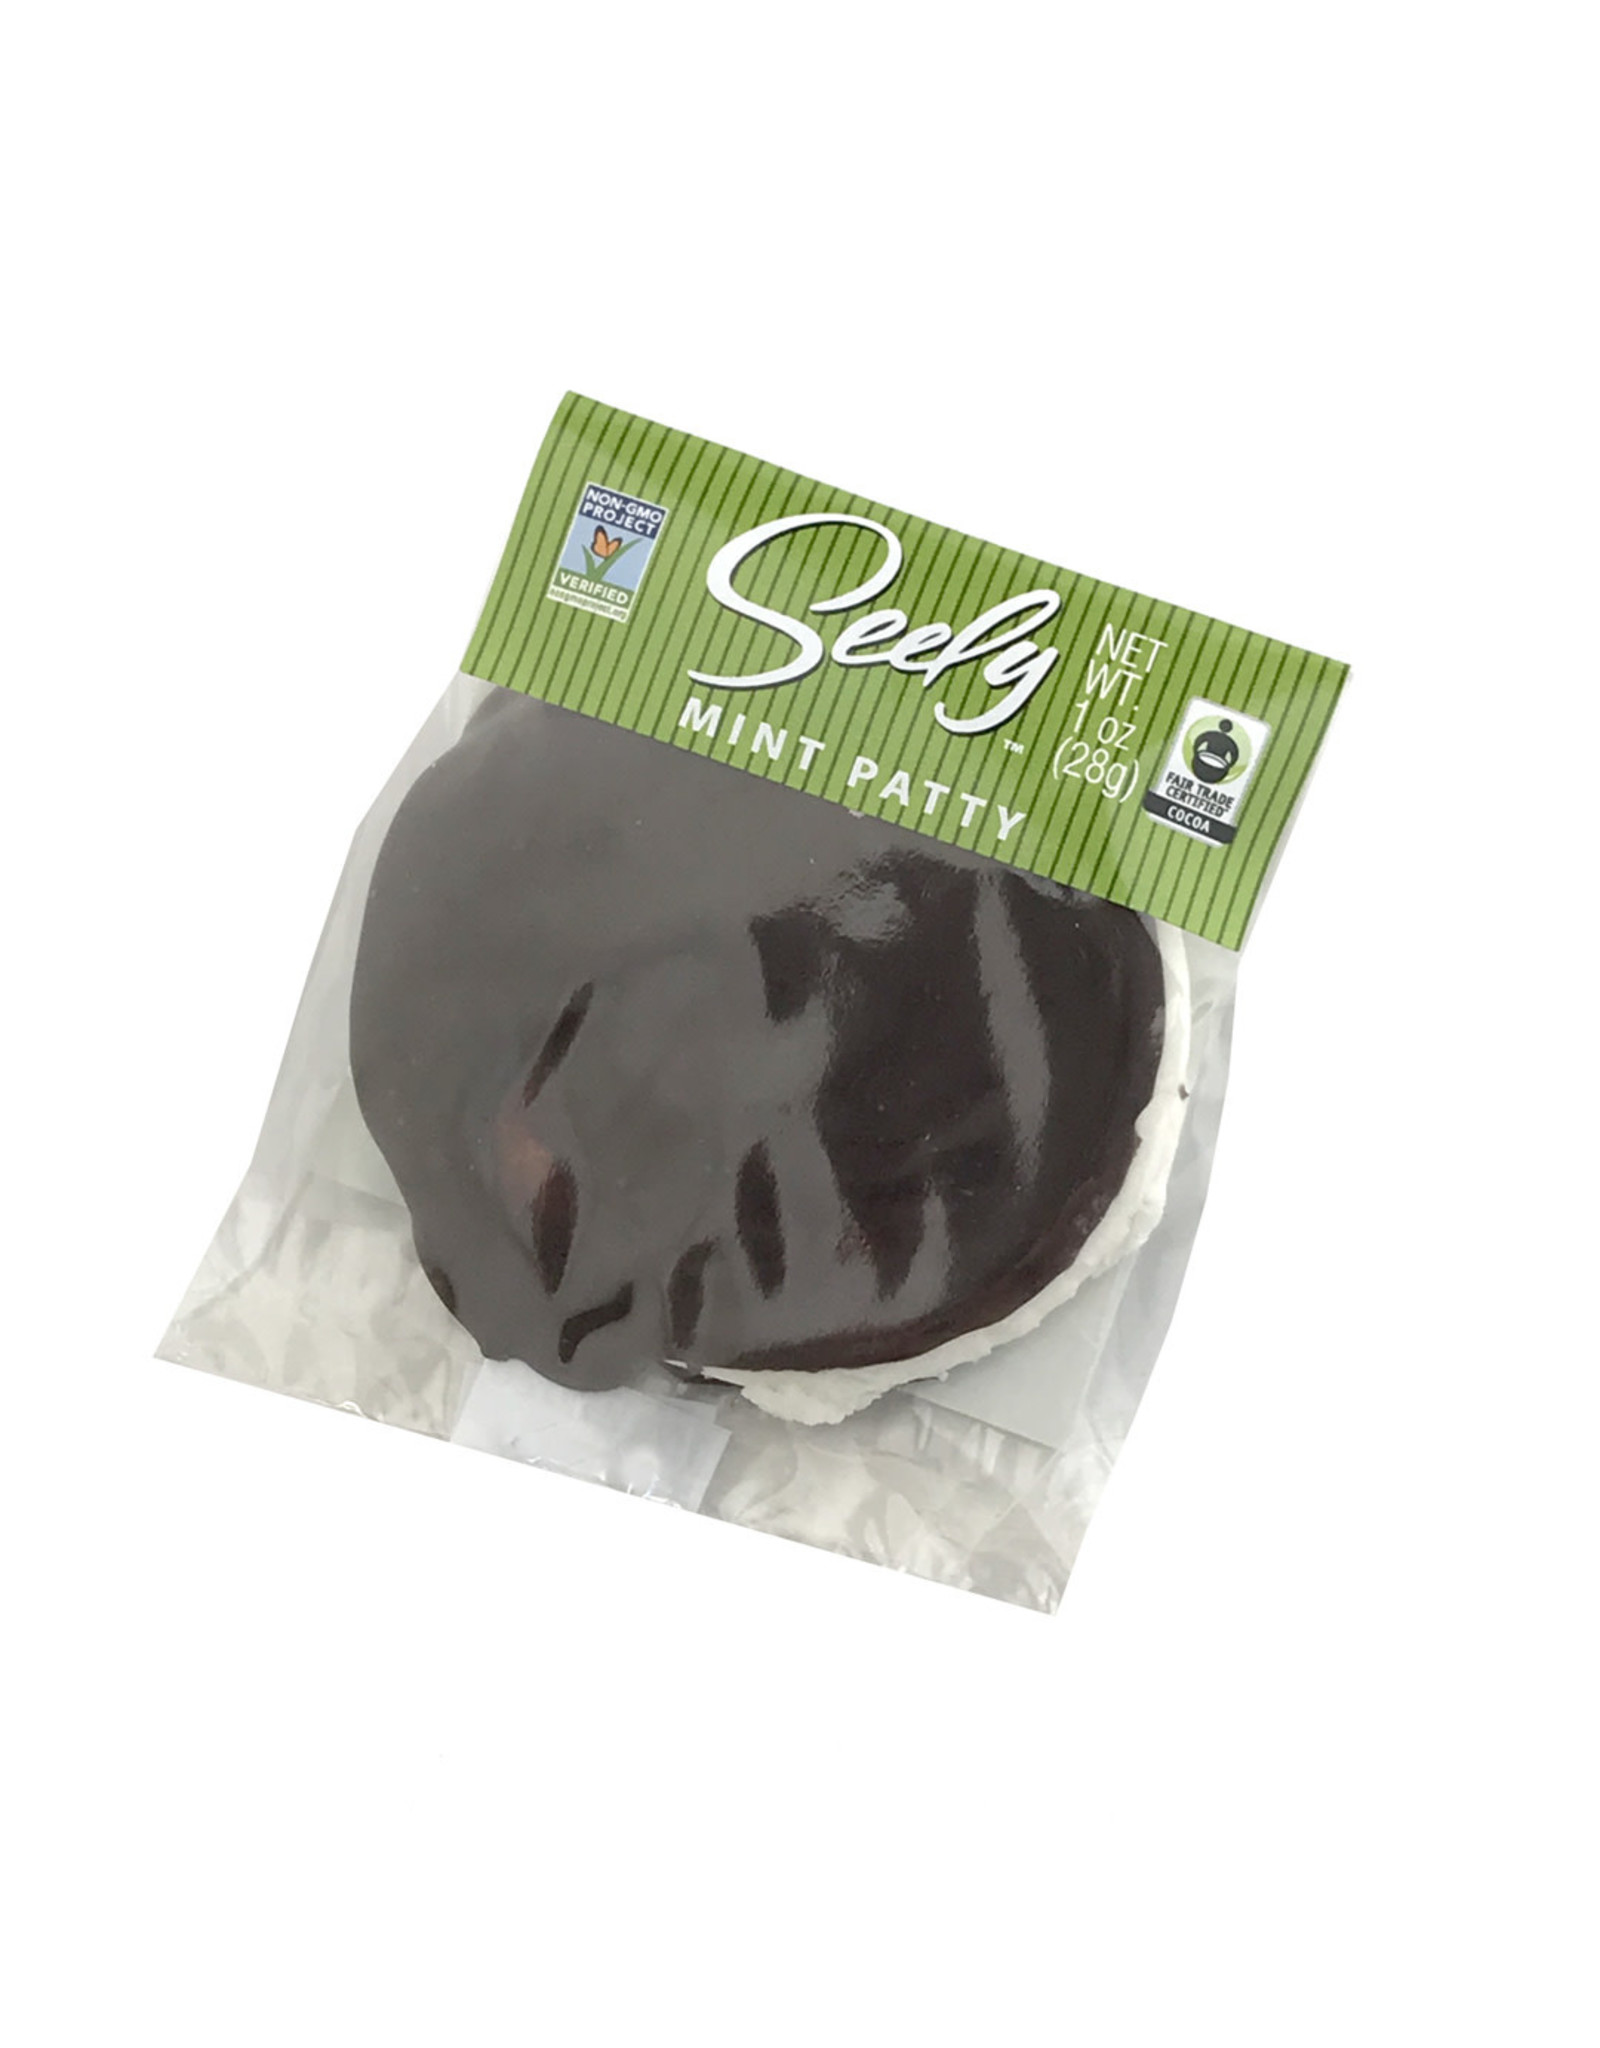 Seely Mints Seely INDIVIDUAL (1 Patty) Dark Chocolate Mint Patties